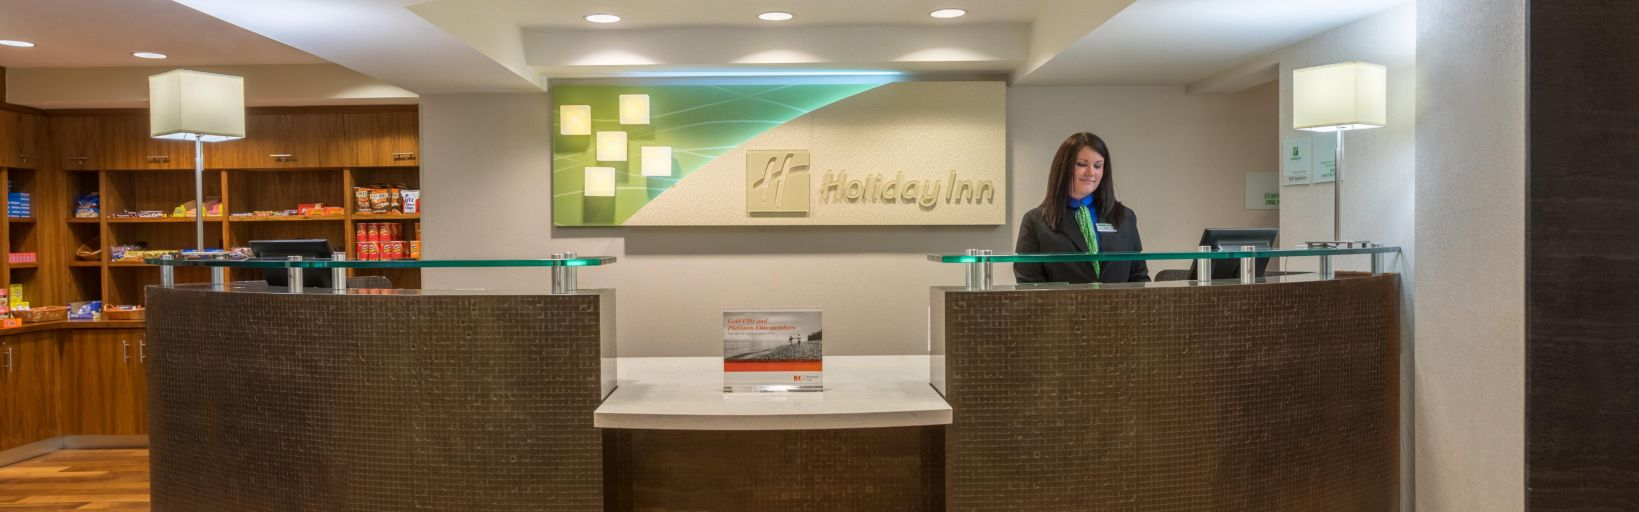 Baltimore, Maryland Hotel near BWI Airport - Holiday Inn